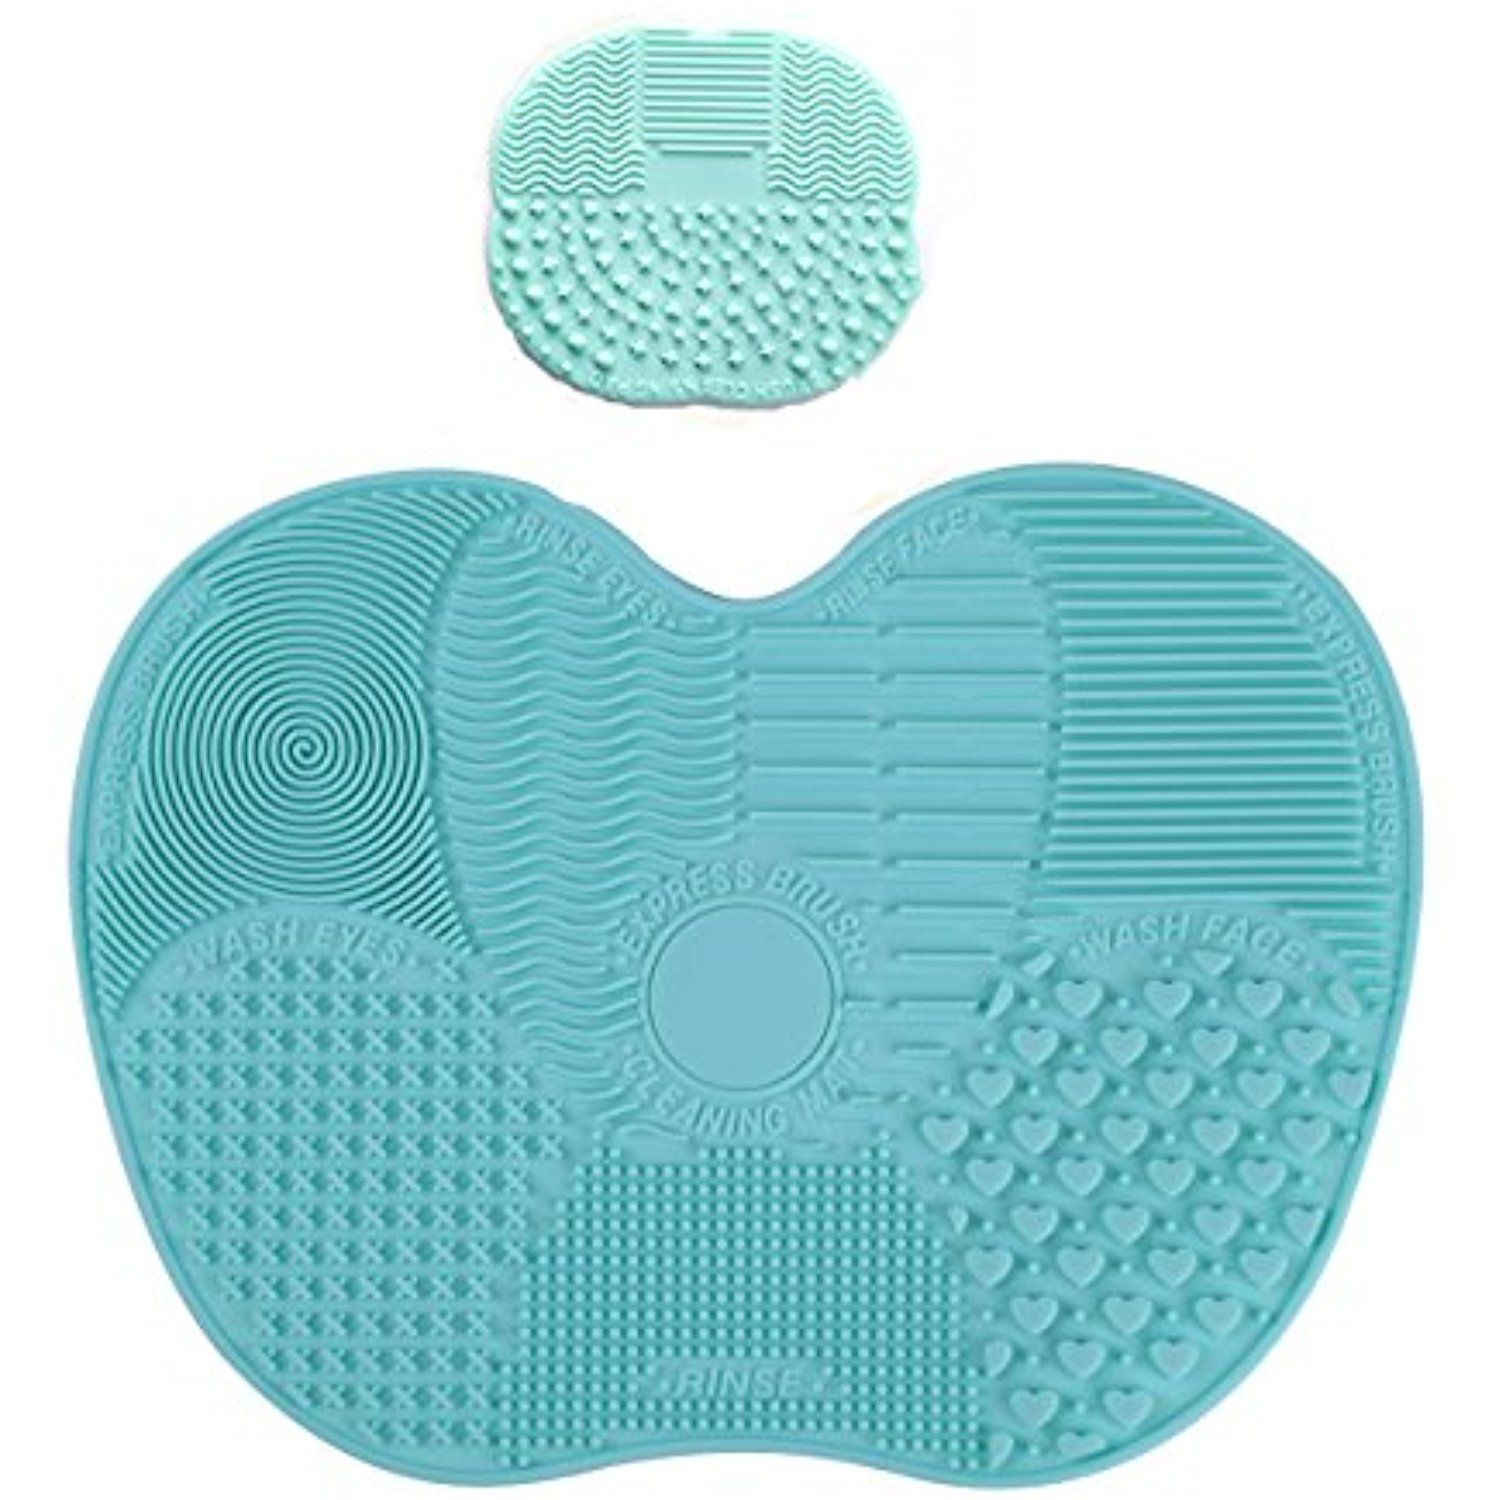 Makeup Brush Cleaning Mat,AuroTrends Best Silicone Makeup